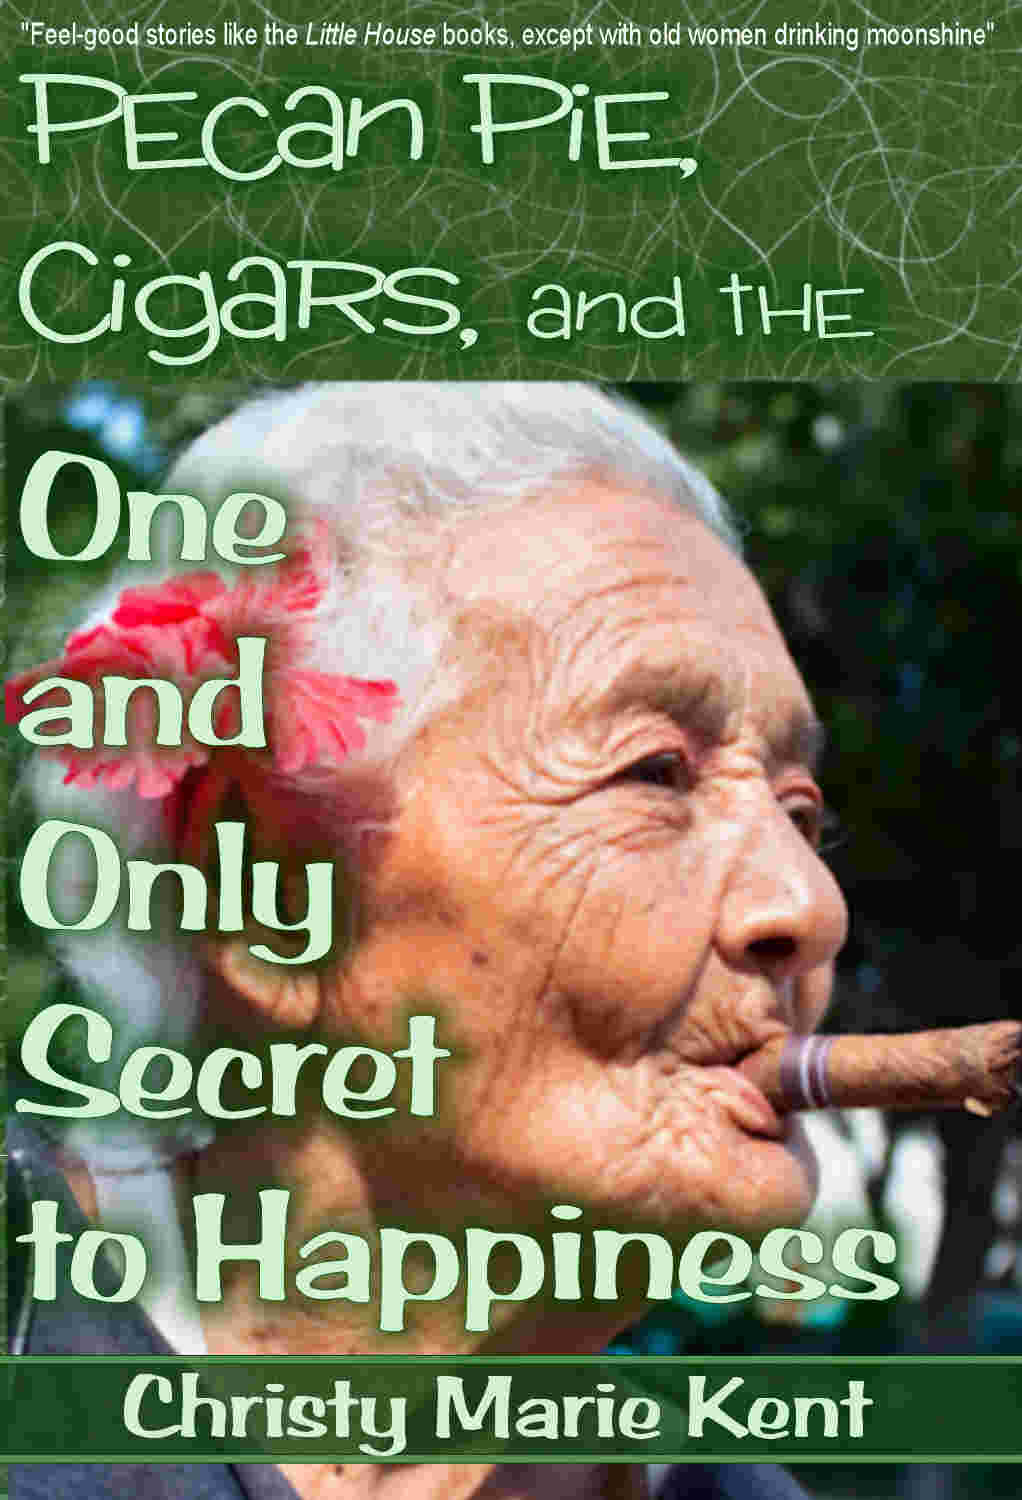 Pecan Pie, Cigars, and the One and Only Secret to Happiness